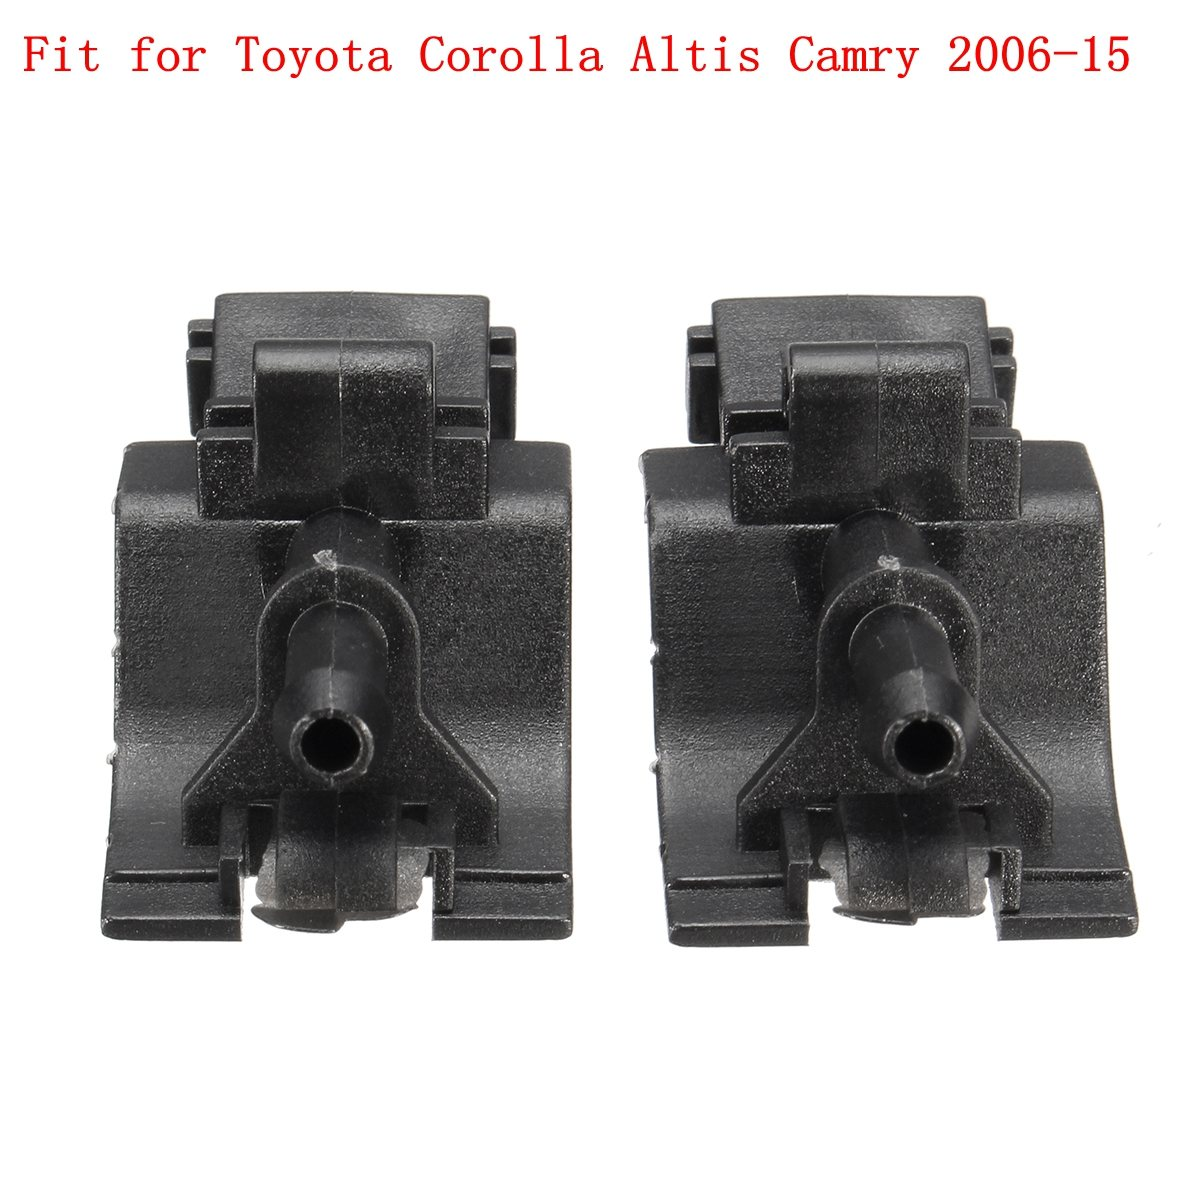 2Pcs Pair Windshield Washer Nozzle Jets Spray Fit for Toyota Corolla Altis Camry 2006-15